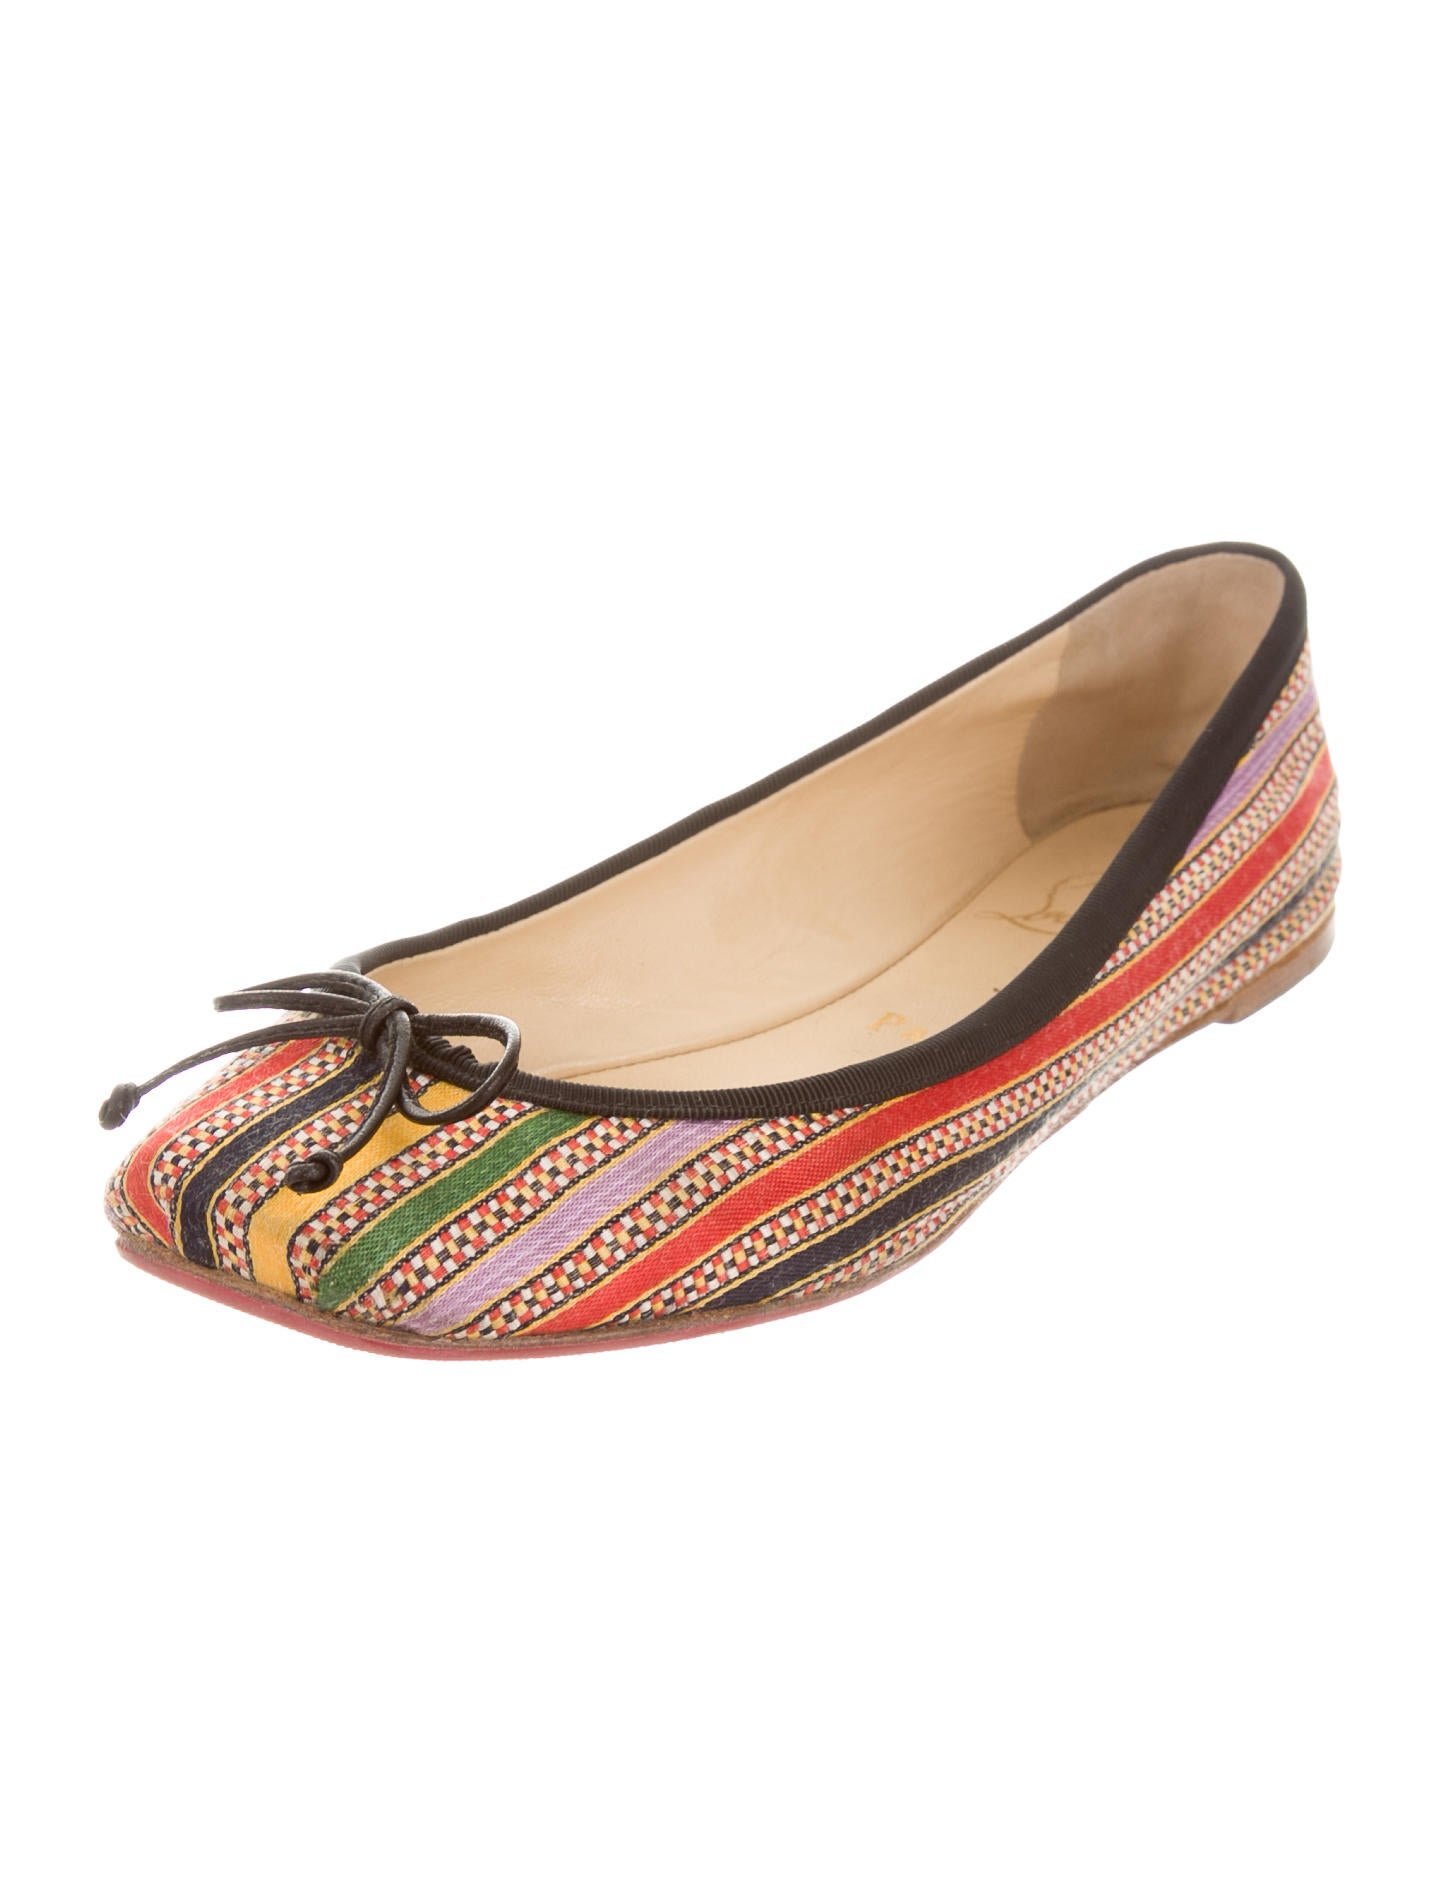 Free shipping BOTH ways on striped flat shoes, from our vast selection of styles. Fast delivery, and 24/7/ real-person service with a smile. Click or call